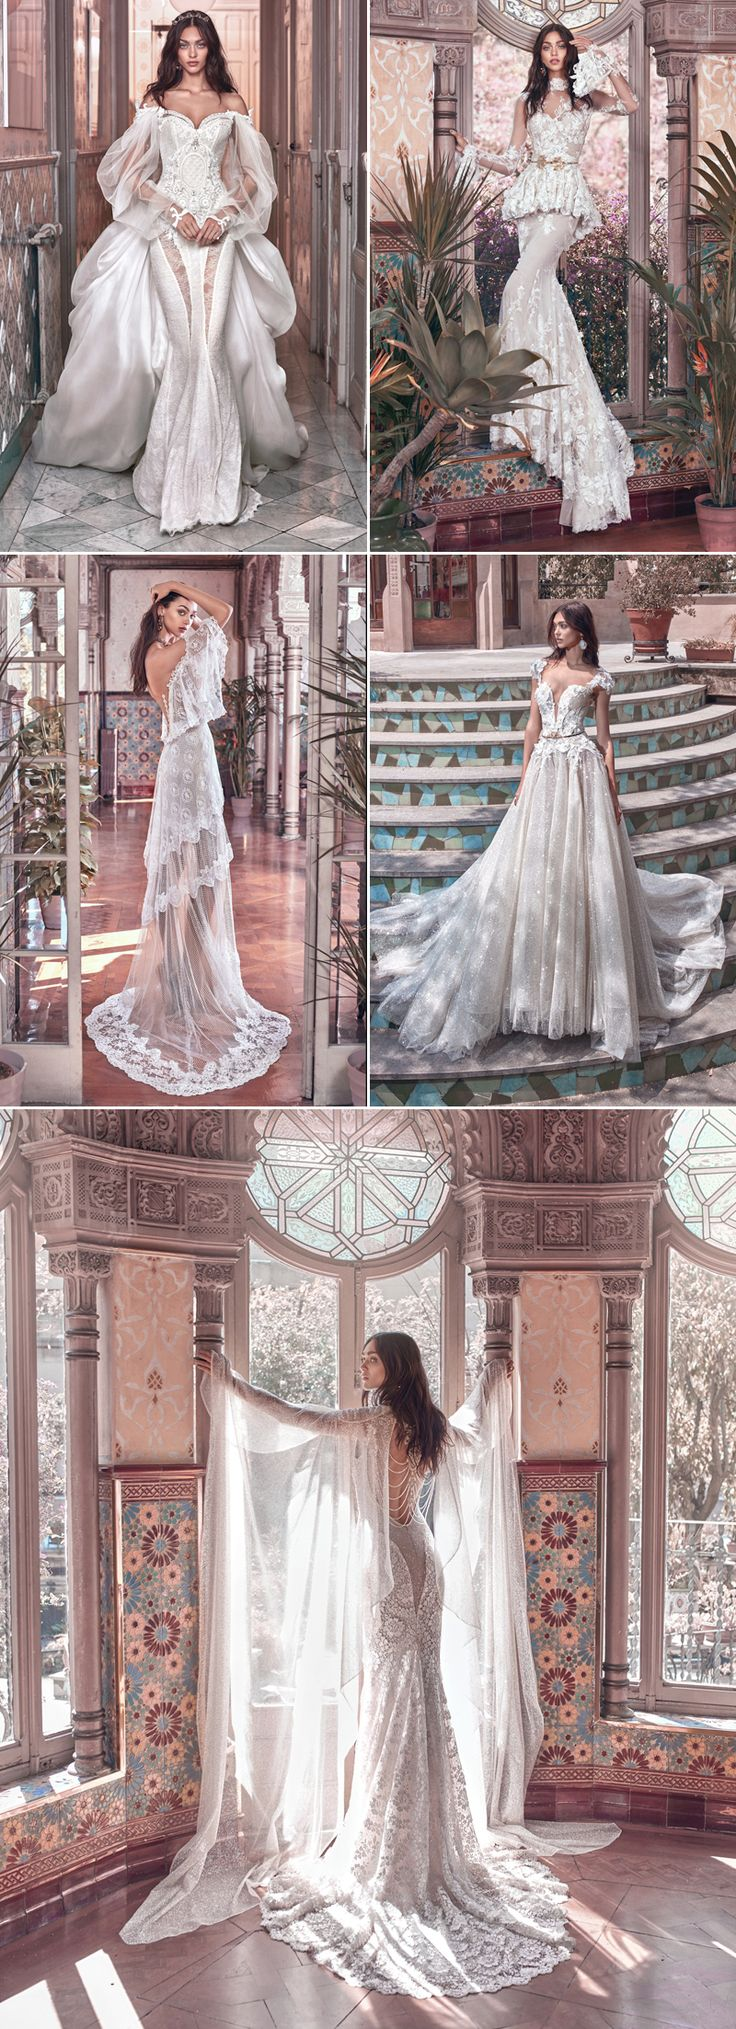 5 Must-Know Bridal Designers For Modern Fashion-Loving Brides! Galia Lahav